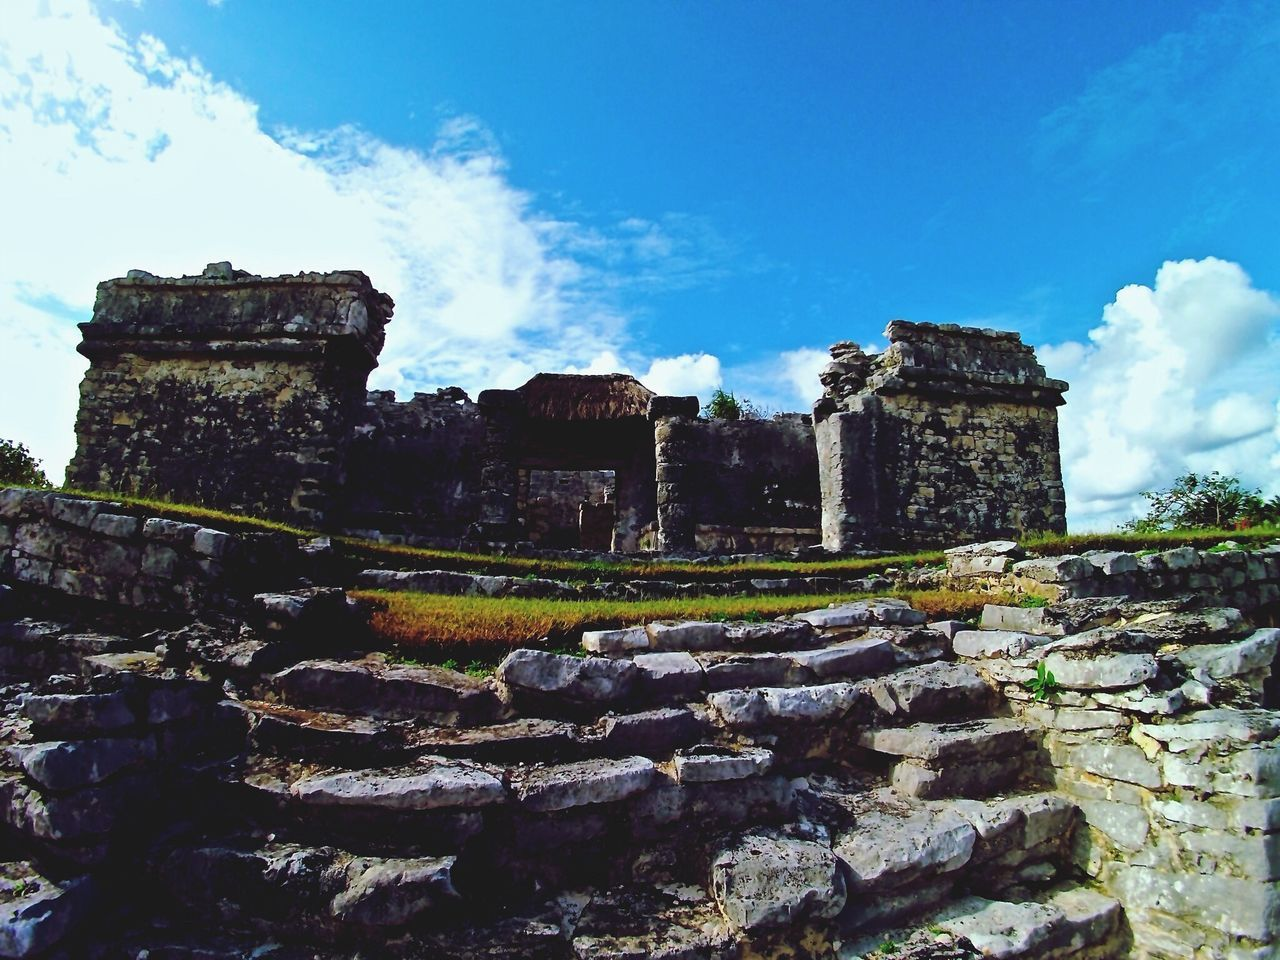 old ruin, history, architecture, built structure, ancient, ancient civilization, the past, old, archaeology, building exterior, day, damaged, sky, bad condition, cloud - sky, travel destinations, low angle view, no people, outdoors